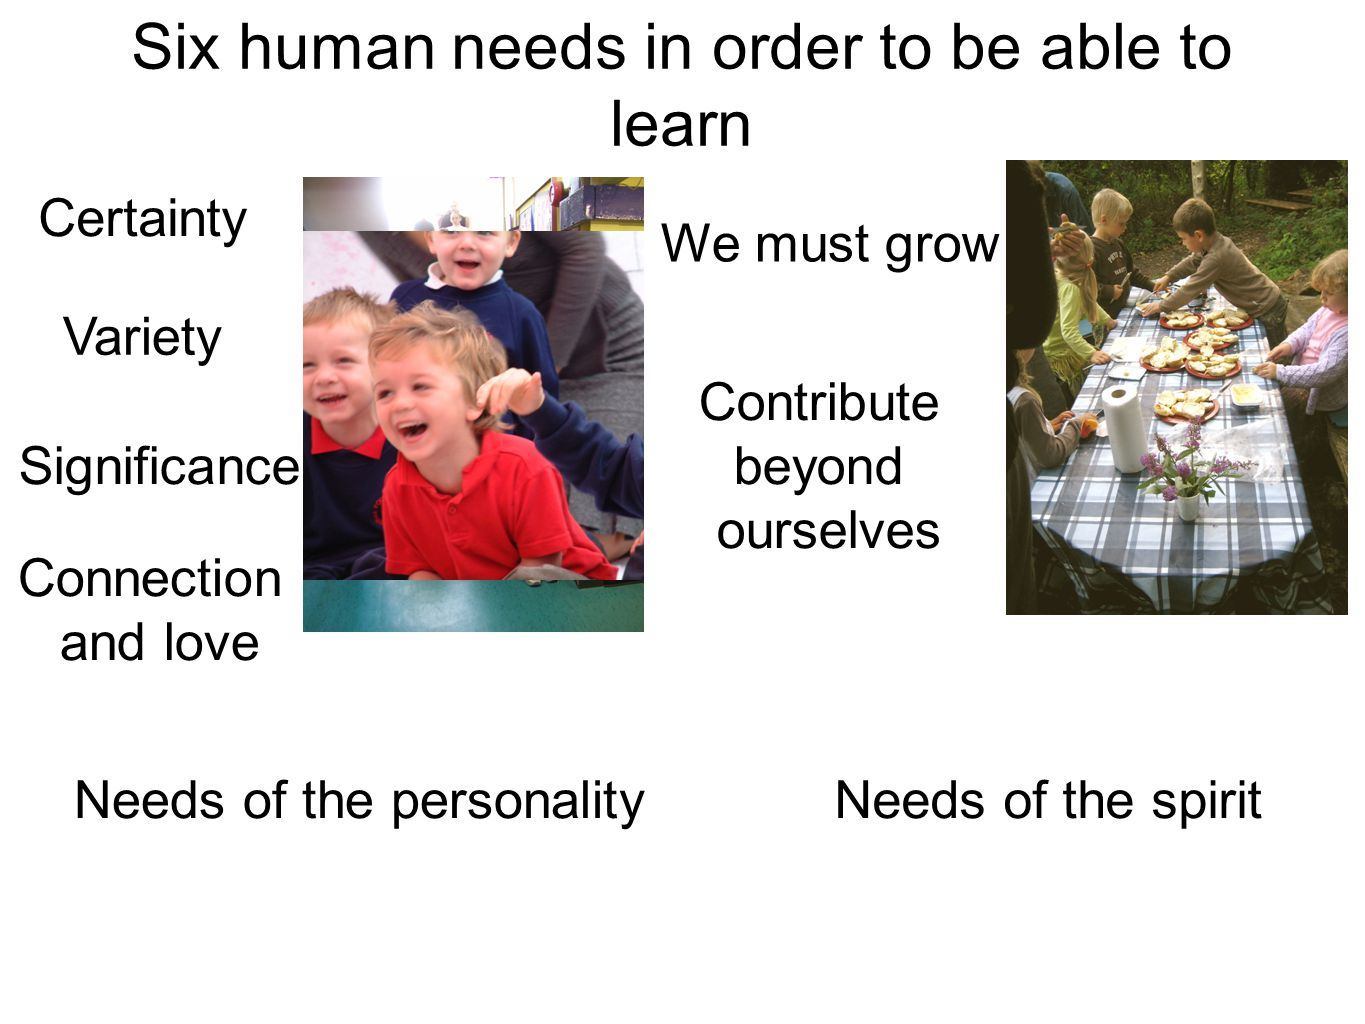 Six human needs in order to be able to learn